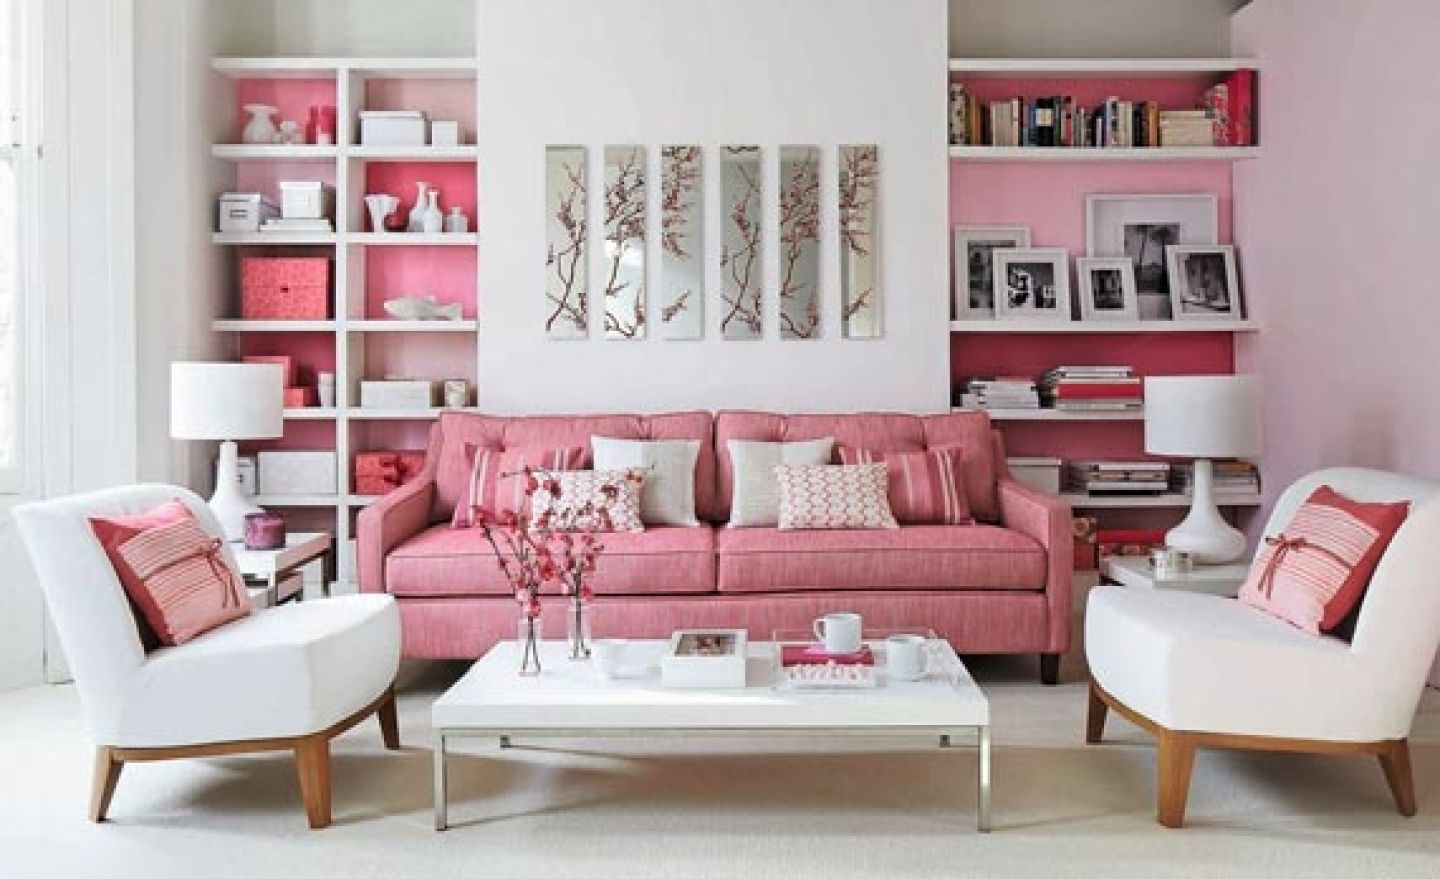 Living Room Pink Living Room Ideas 1000 images about decor ideas when you are stuck with pink carpet and countertops on pinterest